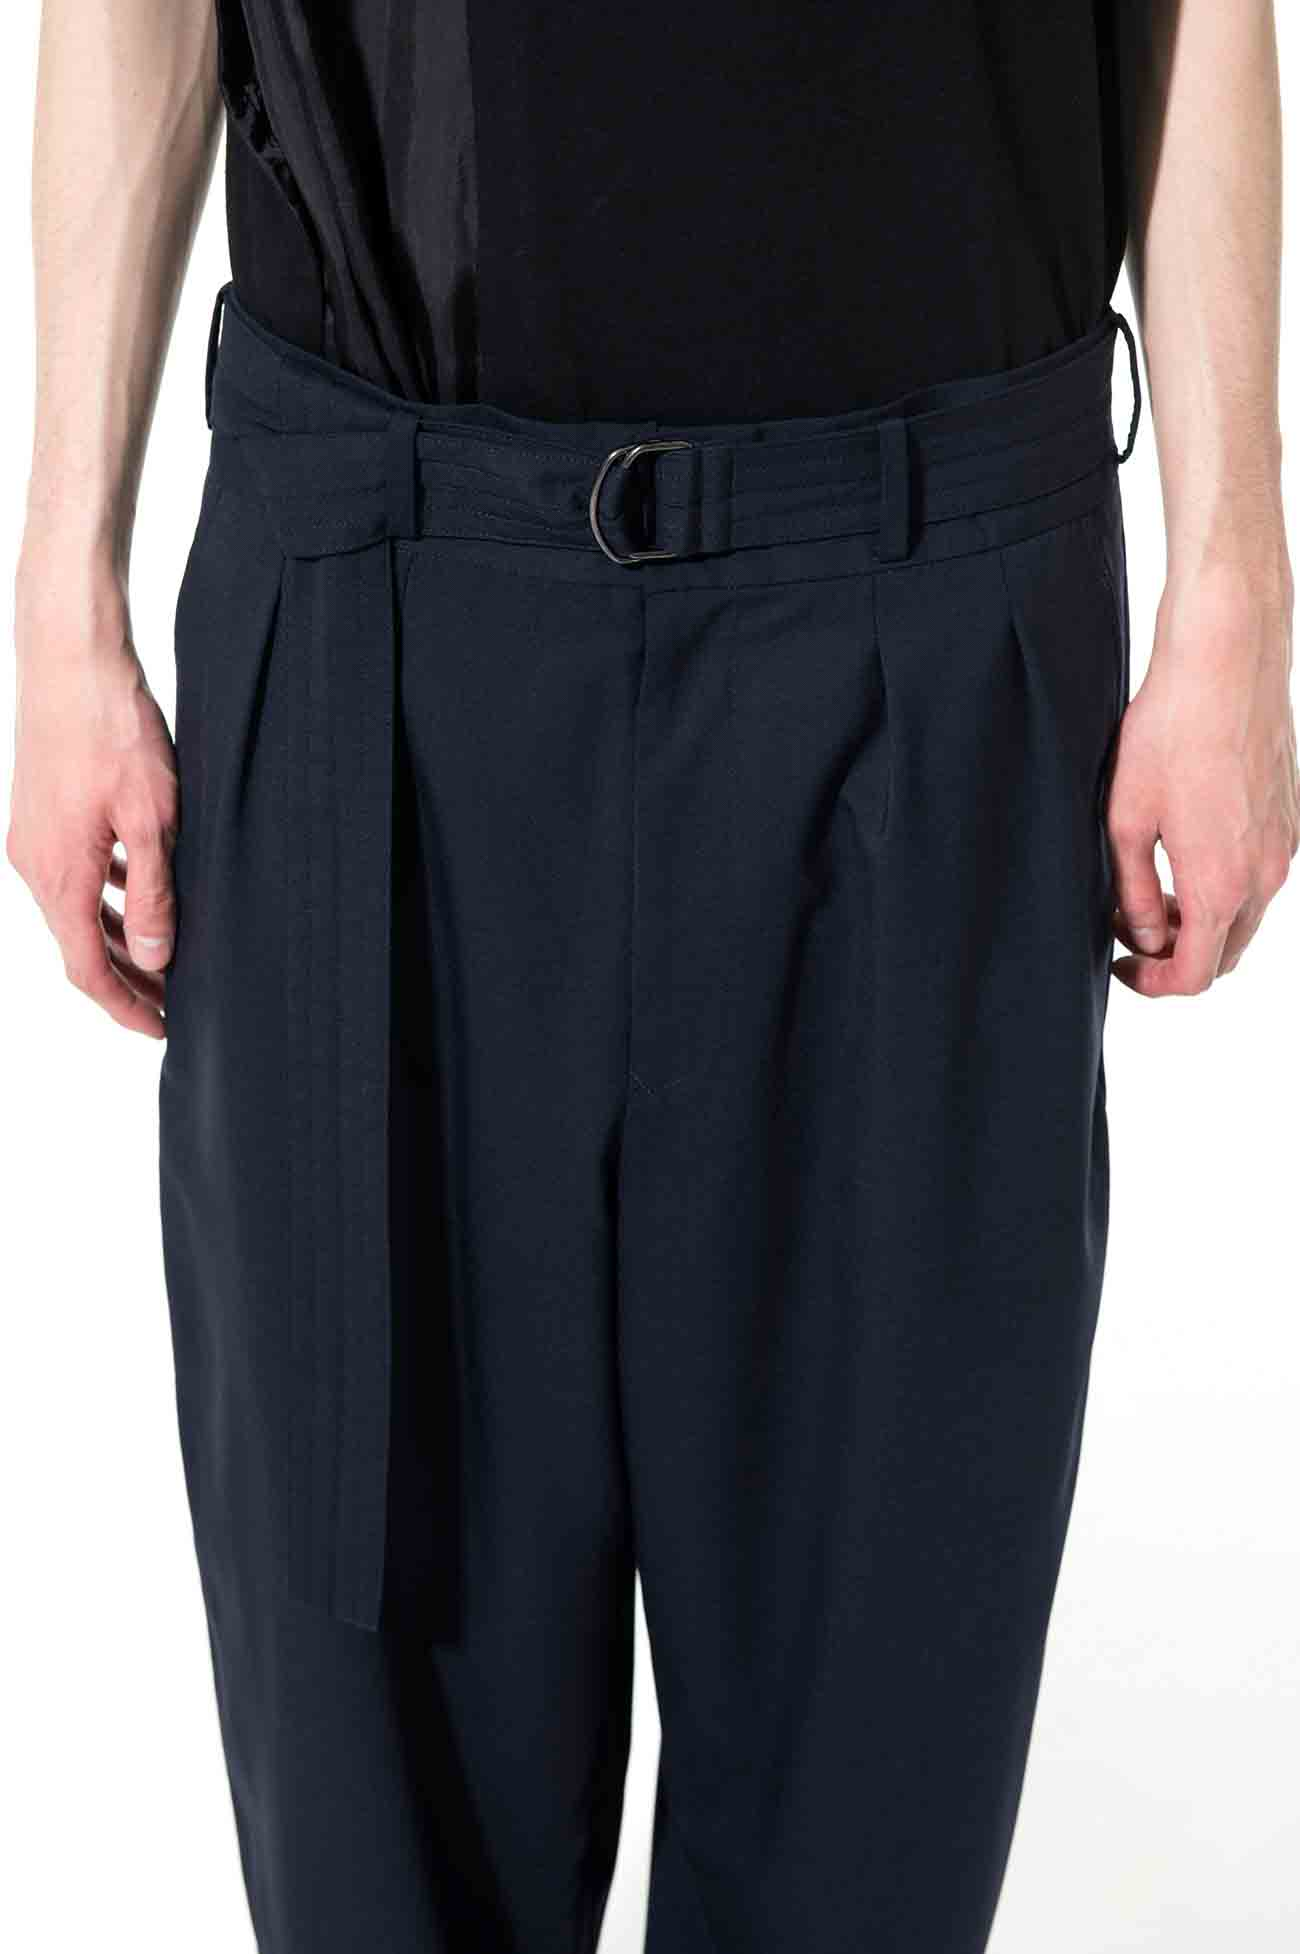 T/W Tropical Indian Boota 2-Tuck Tapered Belt Navy Pants